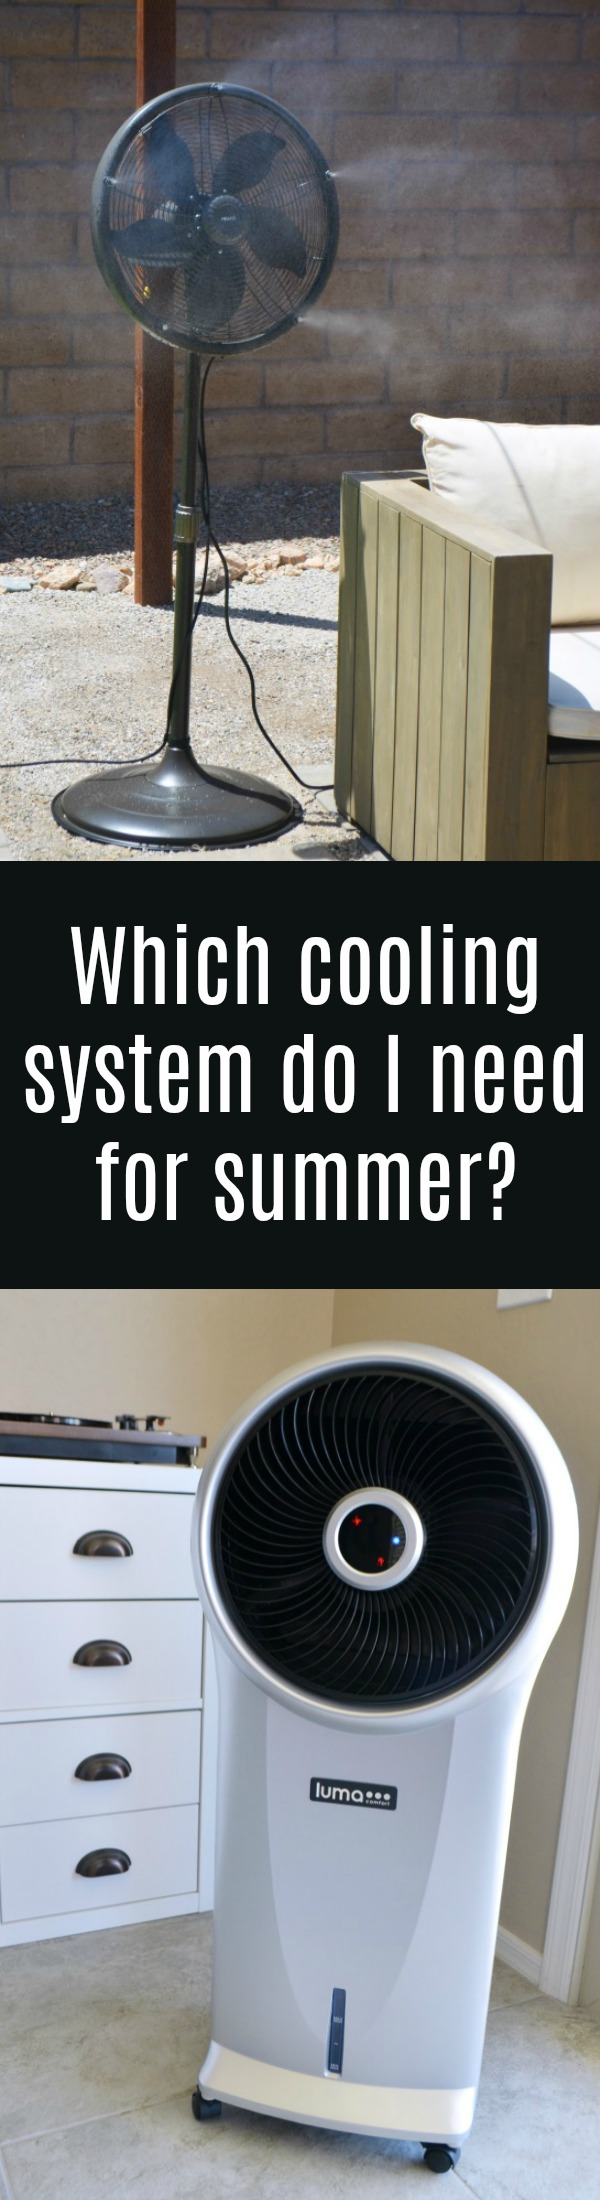 Tips for Keeping Cool This Summer | Evaporative Cooler or Misting Fan, which is best for your summer cooling needs?